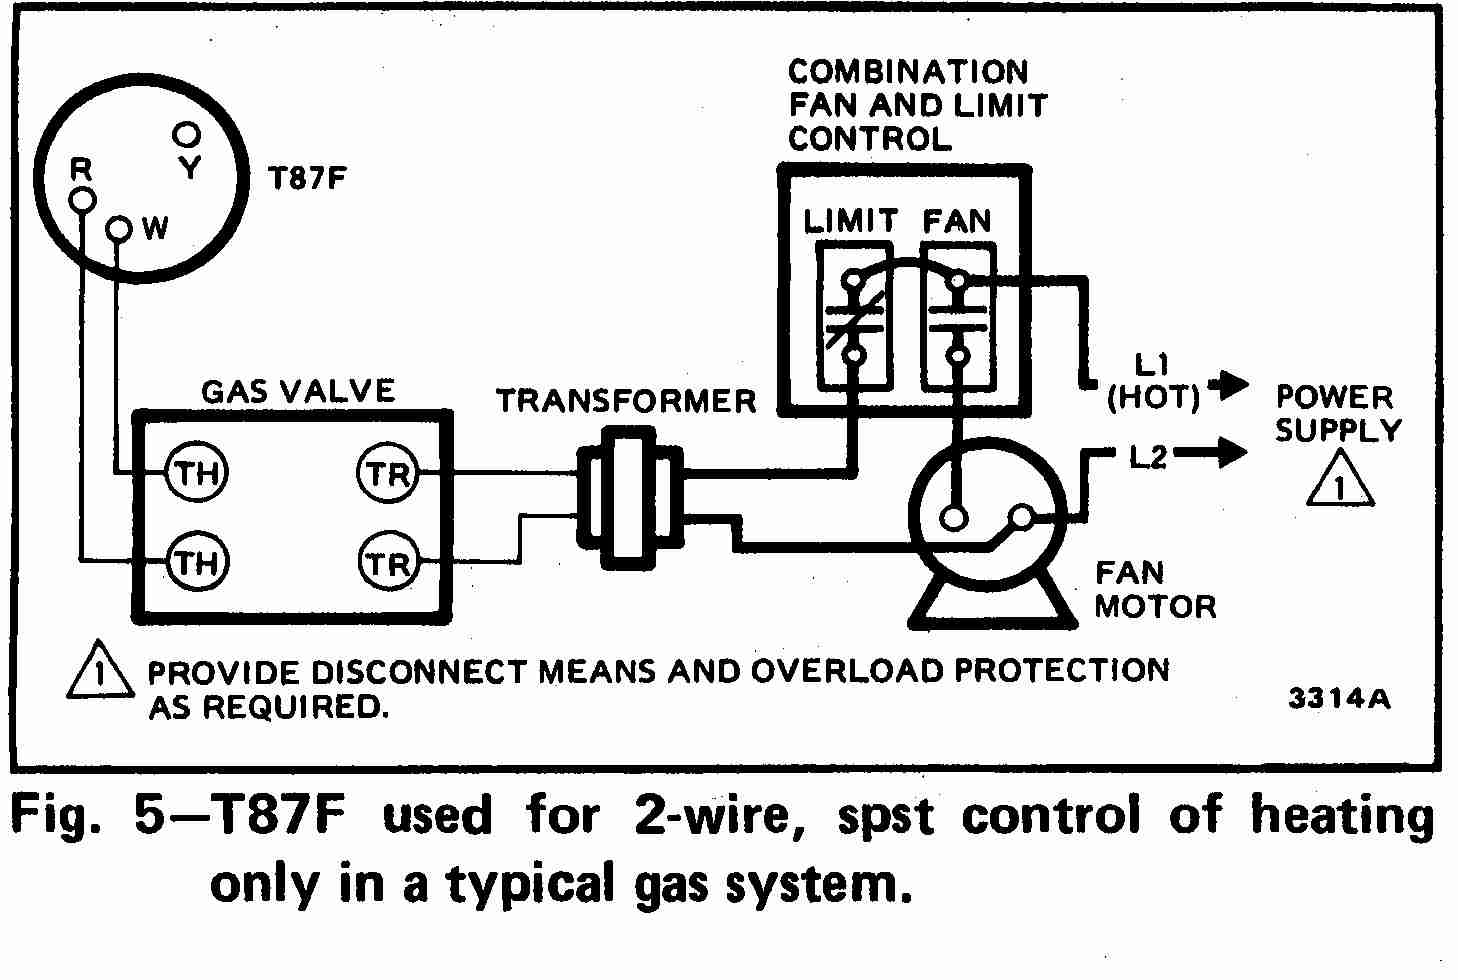 TT_T87F_0002_2Wg_DJF room thermostat wiring diagrams for hvac systems space heater wiring diagram at gsmx.co